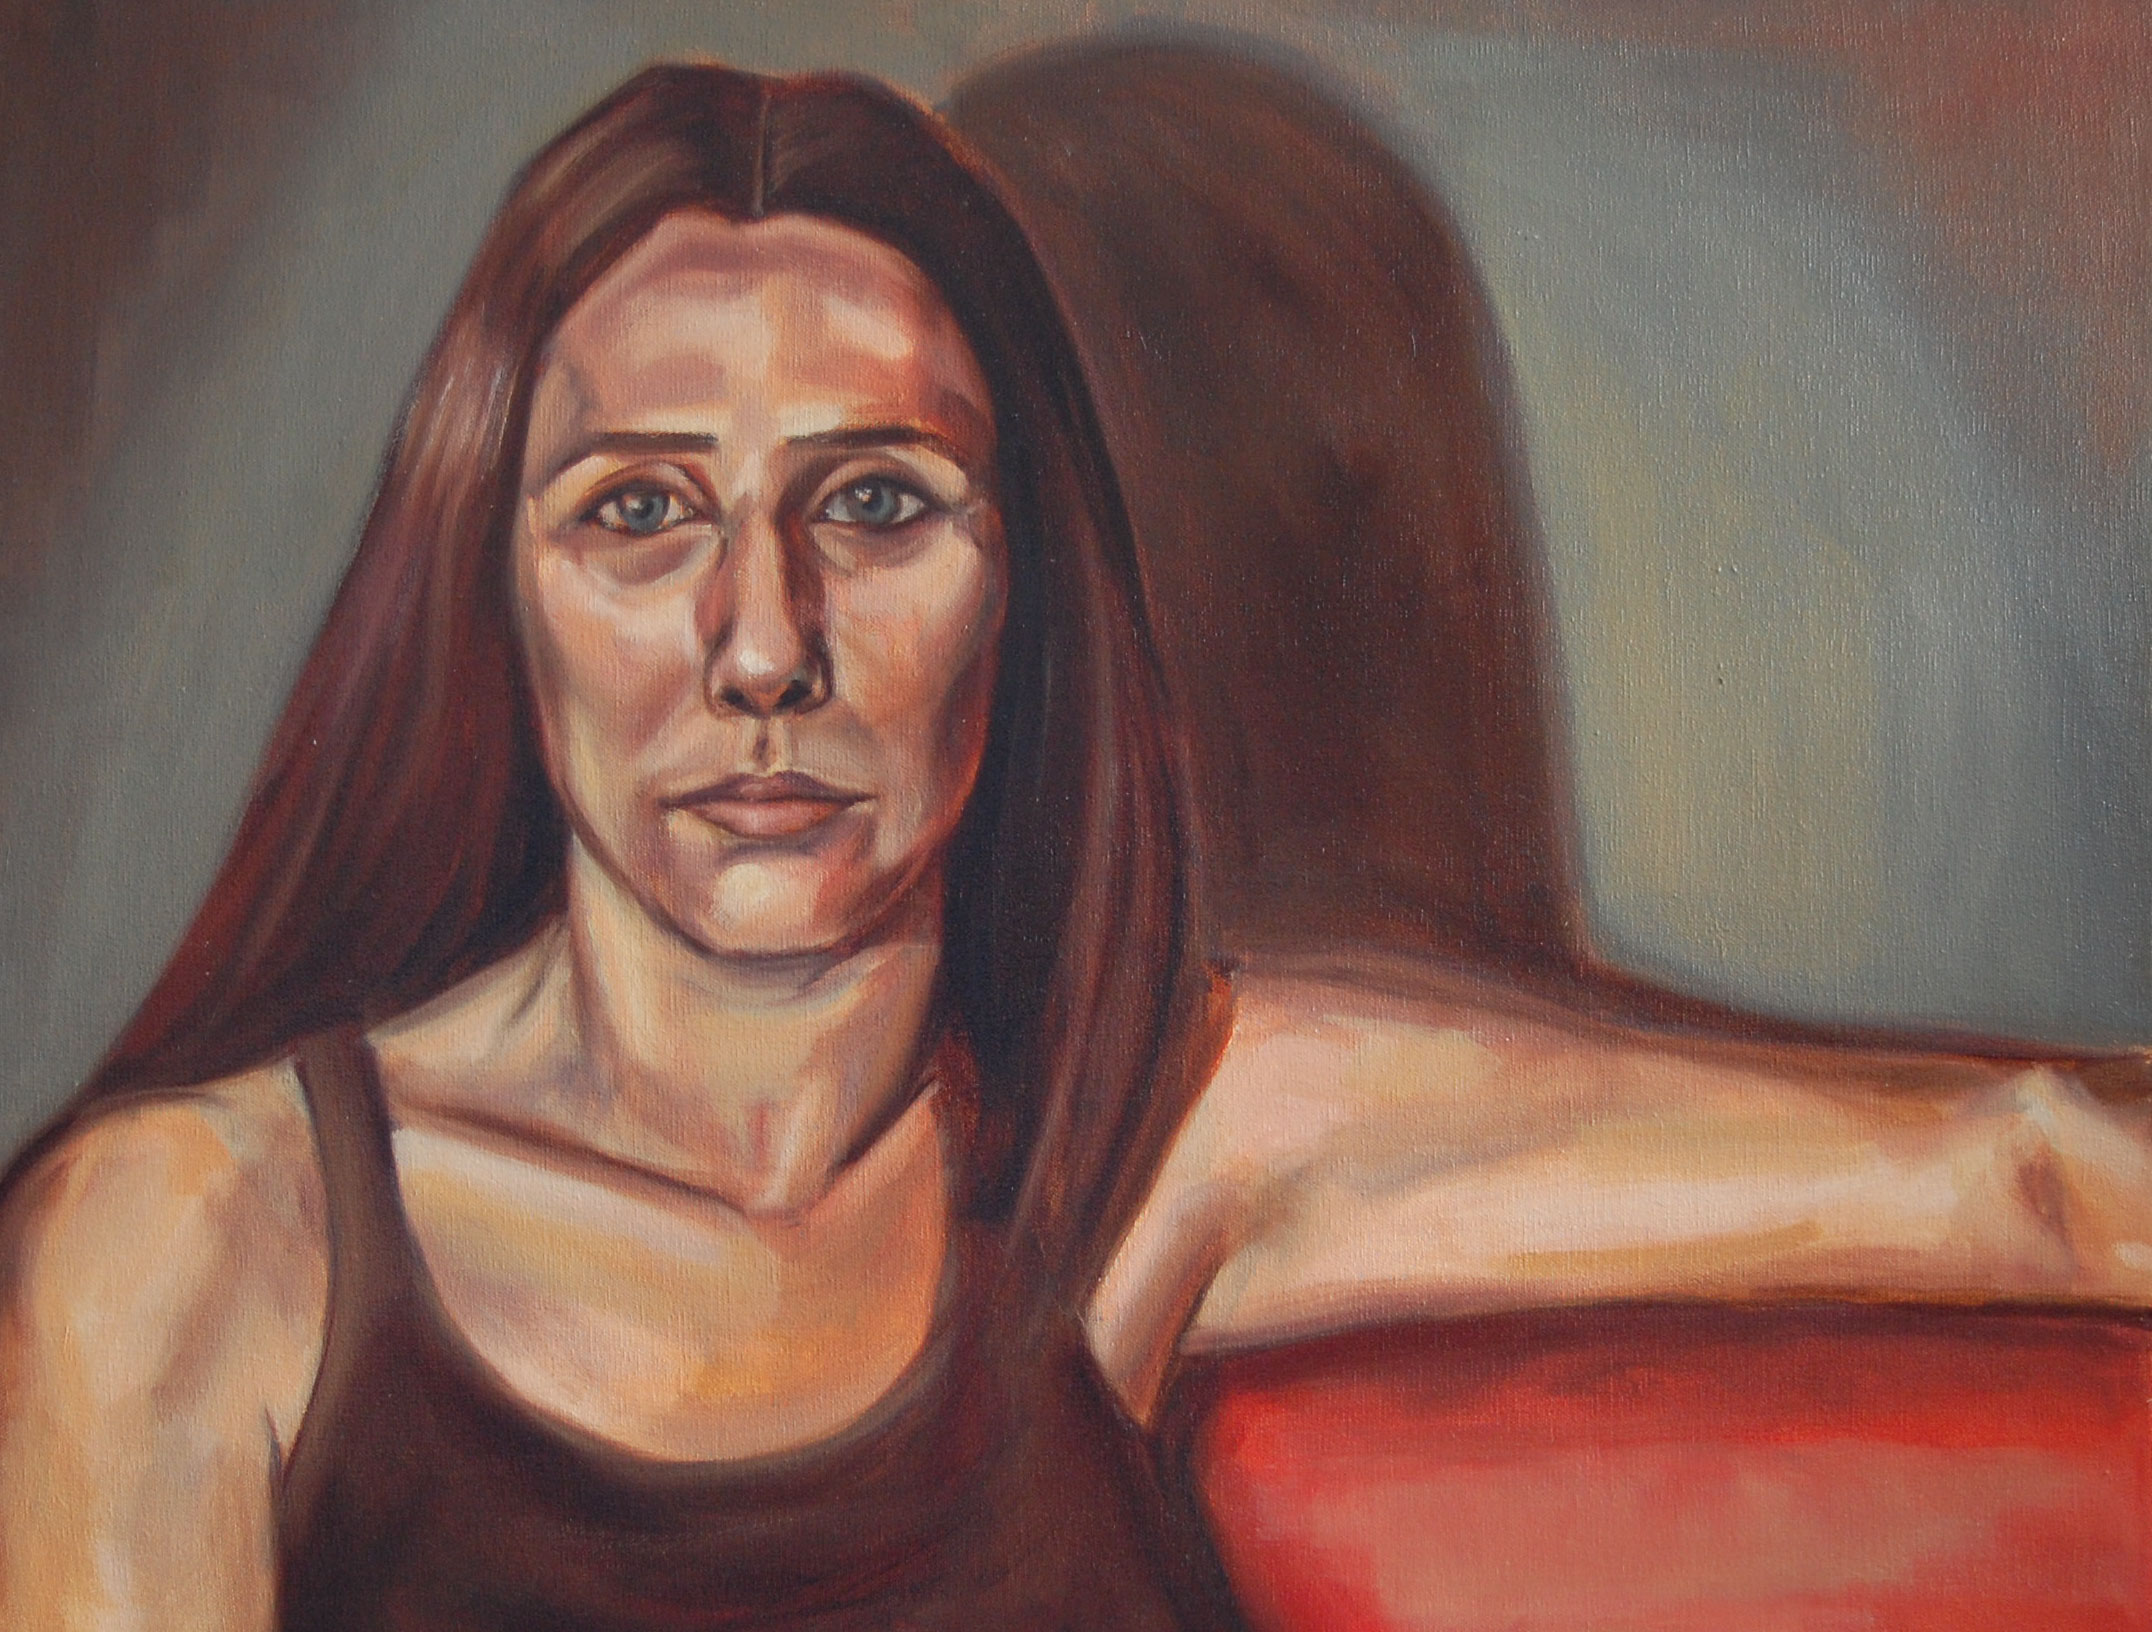 Amandas portrait 30x23inch oil on canvas 30x23inch.jpg